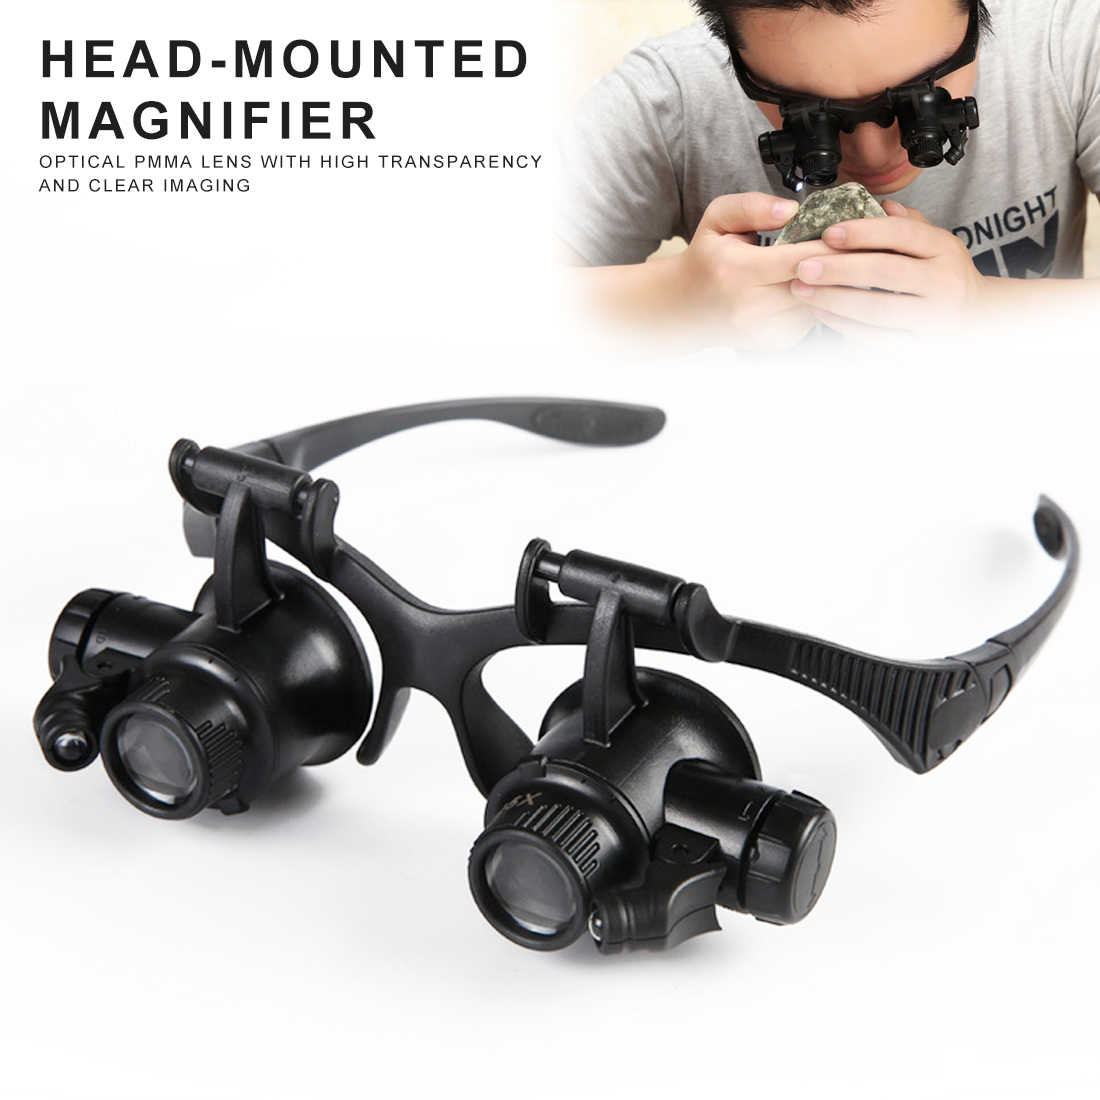 Magnifier with LED Light 10x 15x 20x 25x Headband Magnifier Glasses Jewelry Magnifying Loupe with LED Illuminated for Jeweler Repairing Miniature Engraving